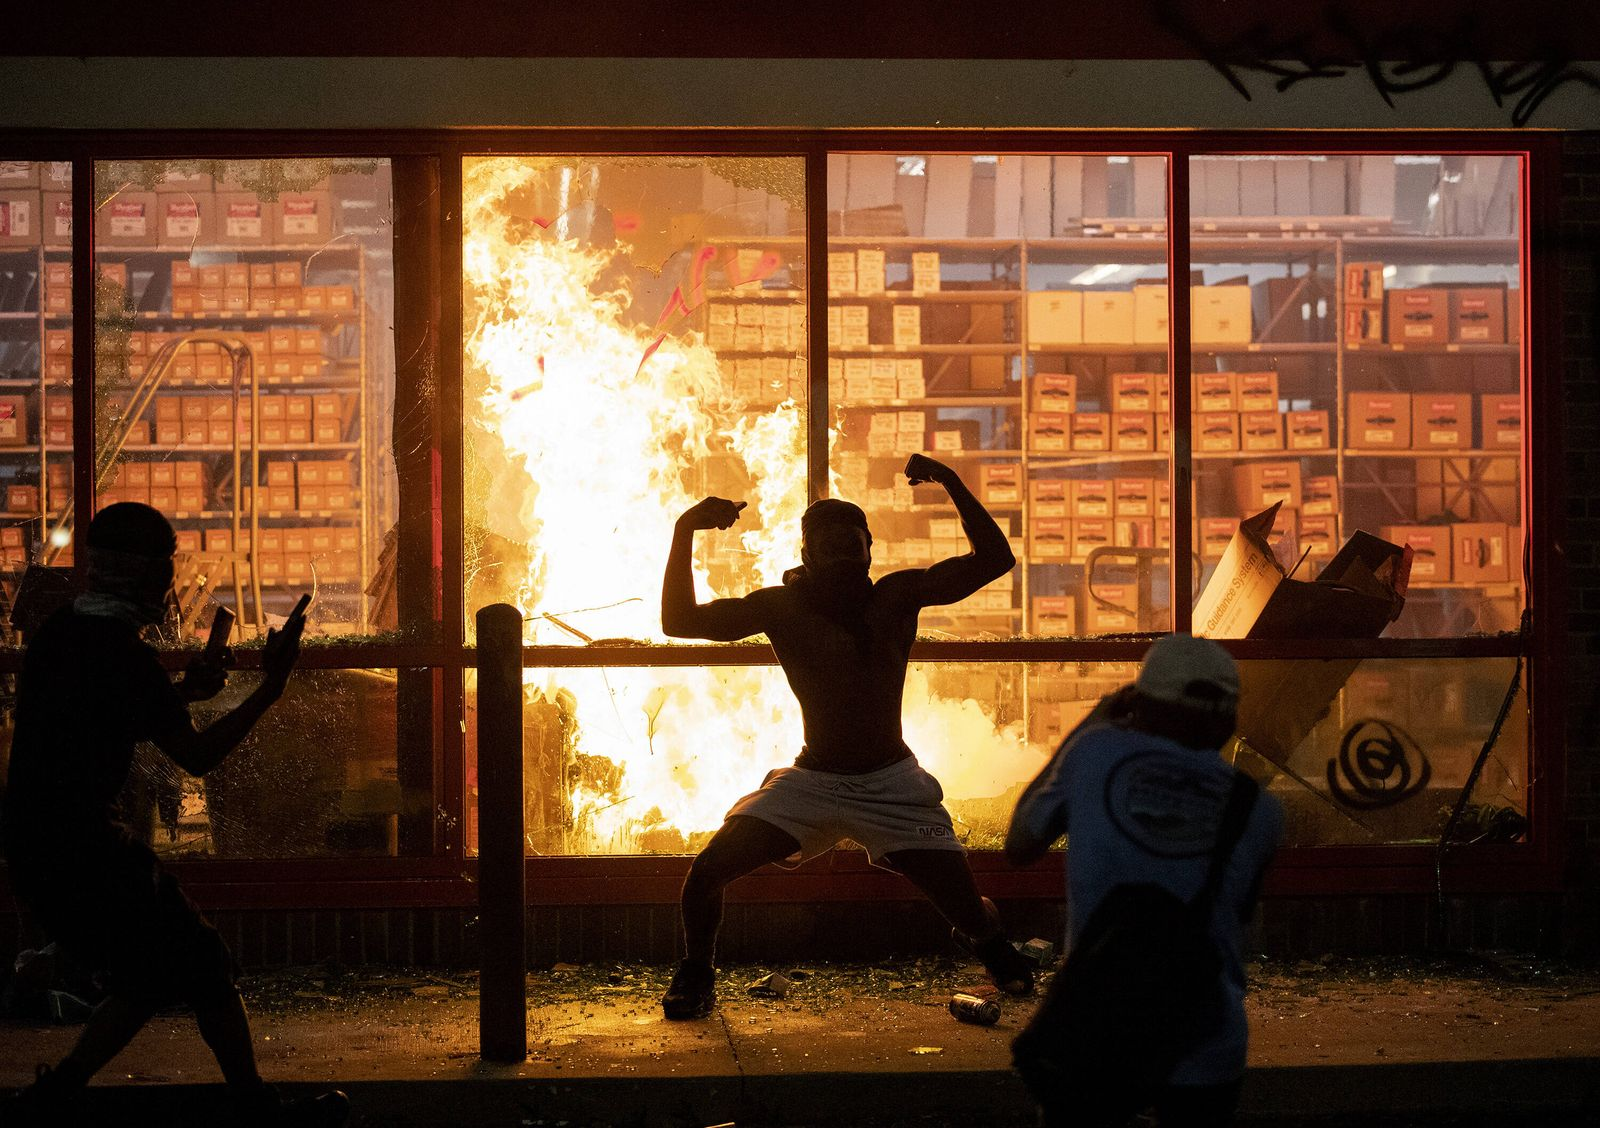 May 27, 2020, Minneapolis, MN, USA: A fire burns at an AutoZone store in Minneapolis on Wednesday, May 27, 2020, as pro